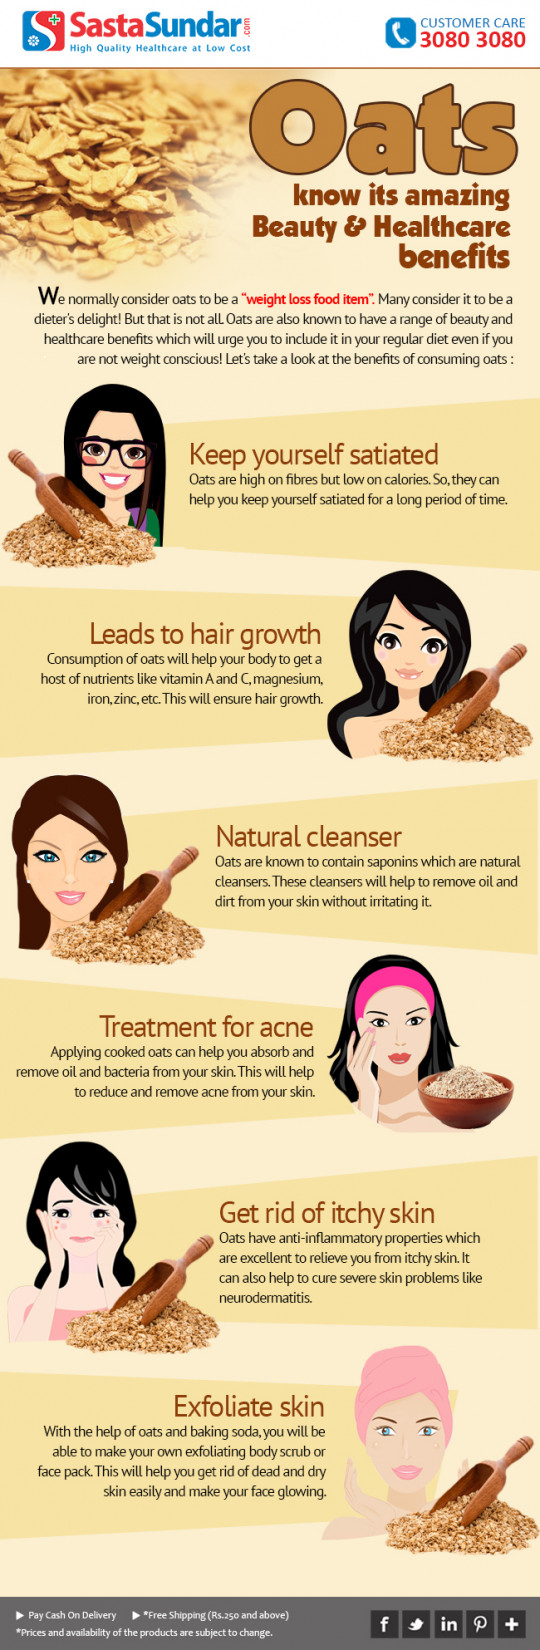 Oats - Know Its Amazing Beauty And Healthcare Benefits